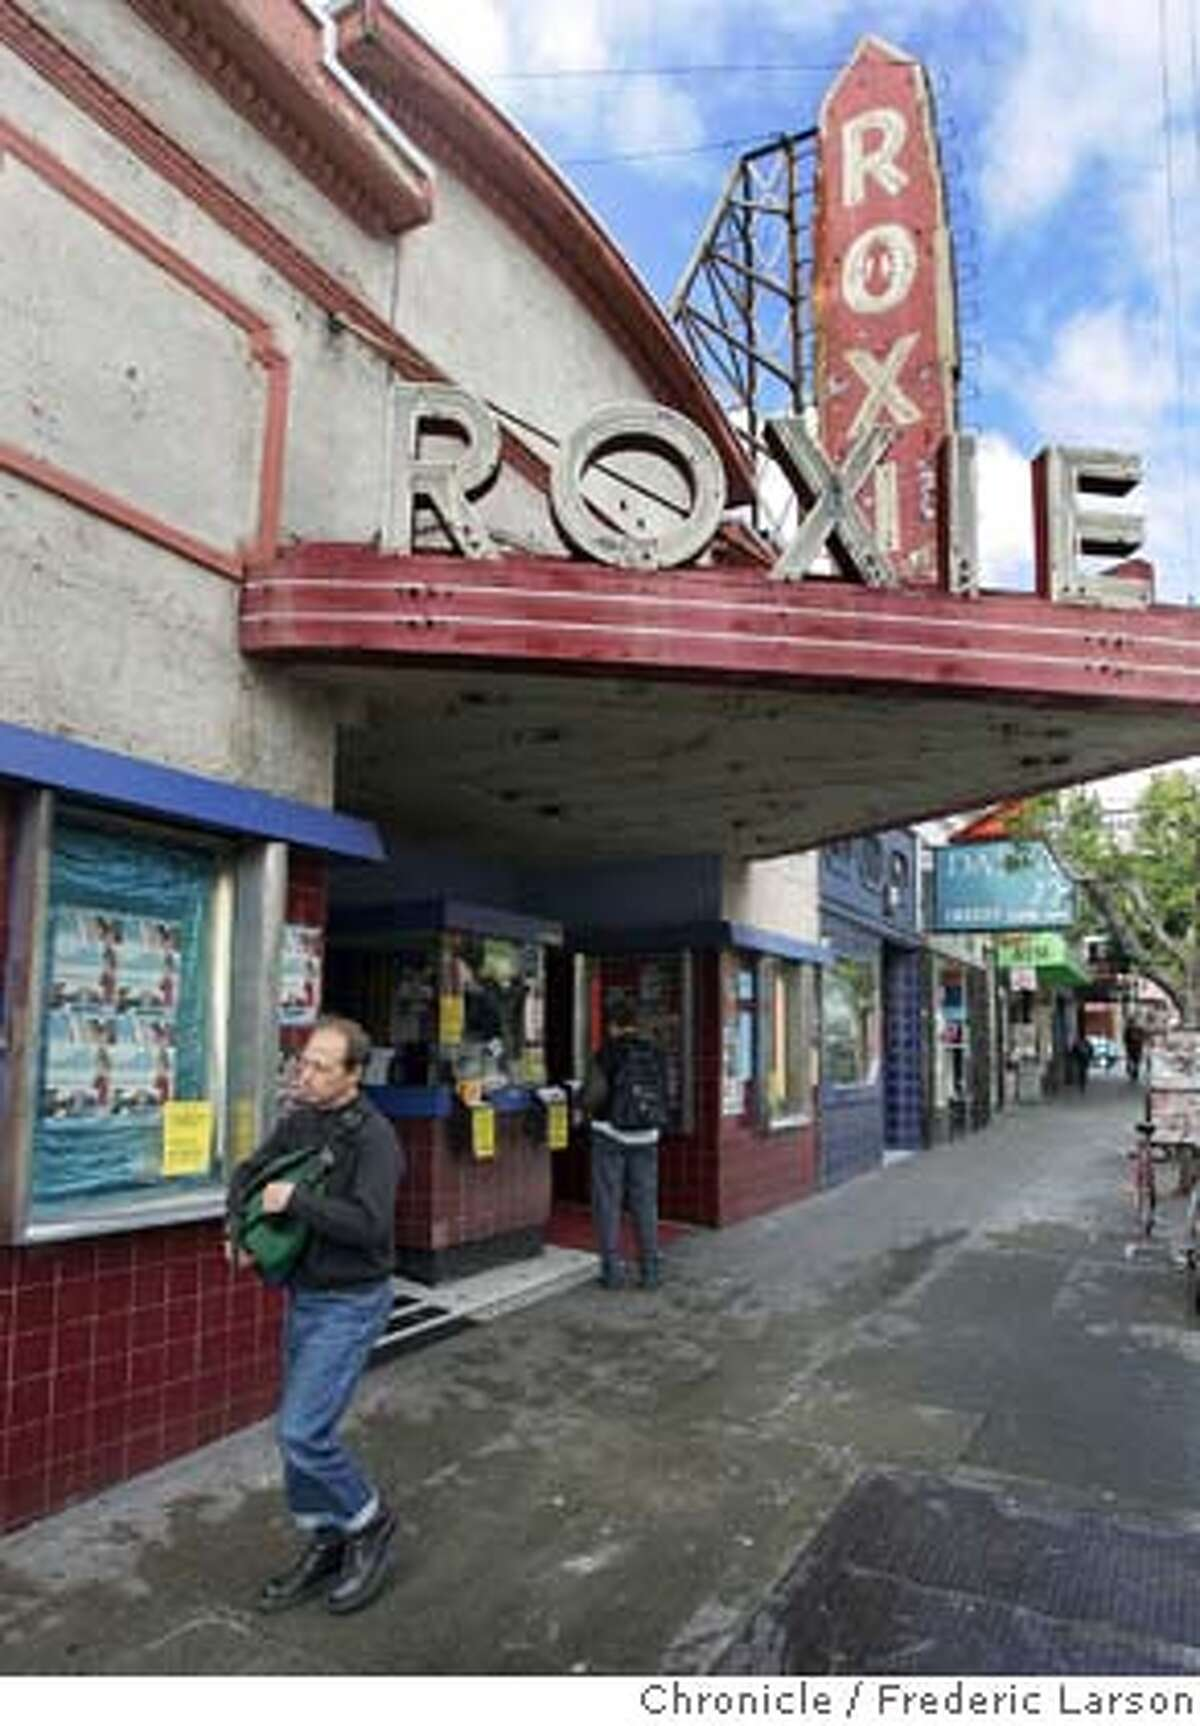 ROXIE_005_fl.jpg The funky and venerable Roxie movie theater at 16th near Mission in SF is being sold after a long run. 5/6/05 San Francisco CA Frederic Larson The San Francisco Chronicle